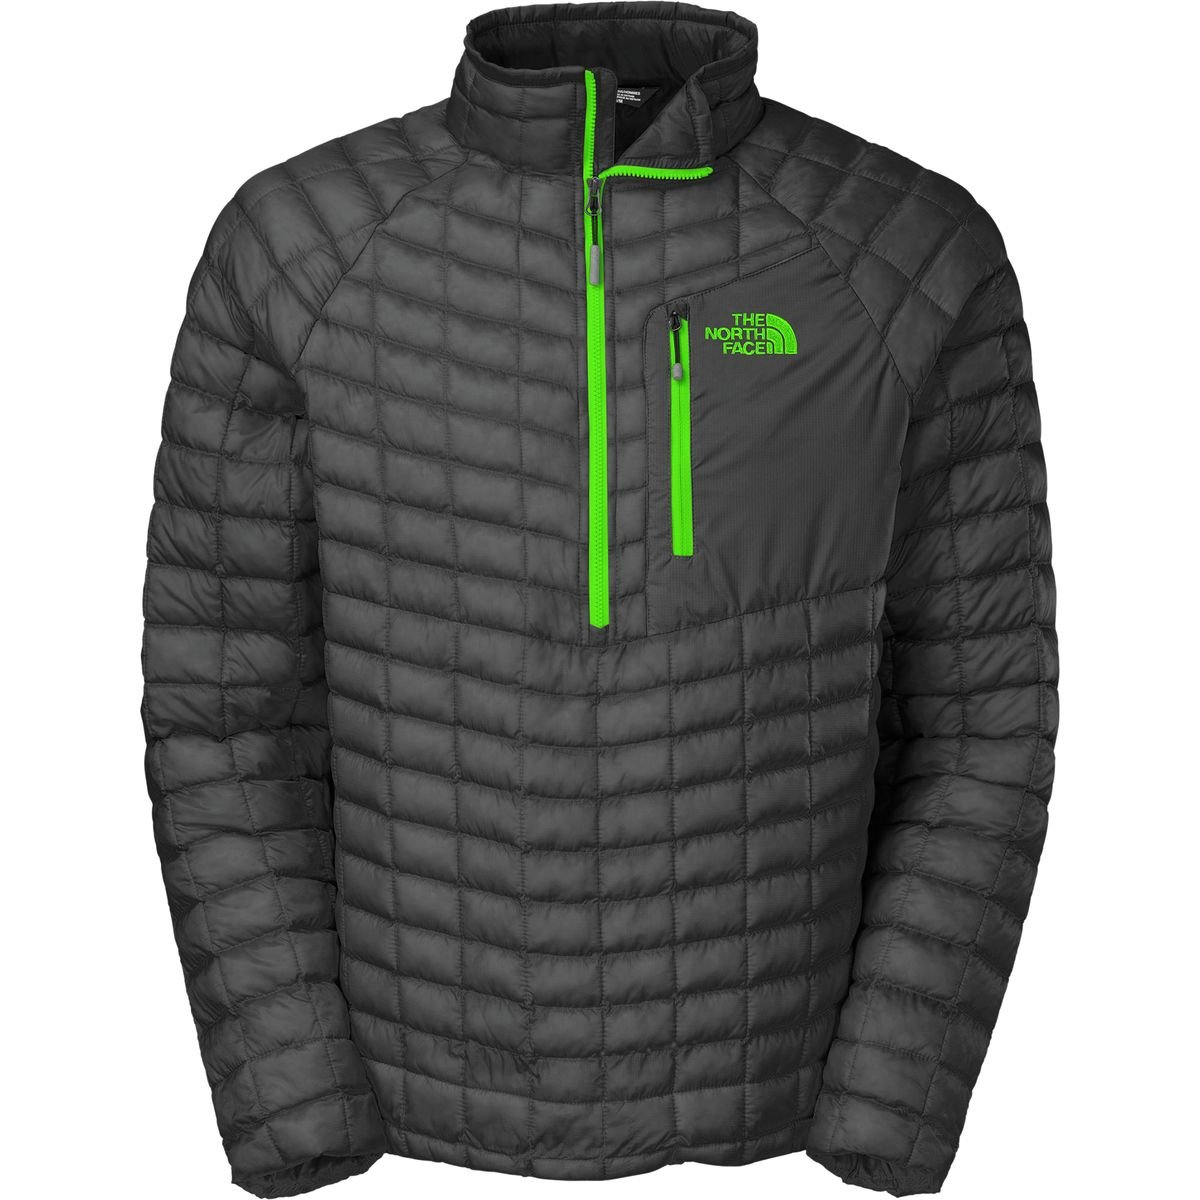 Amazon.com : The North Face Mens Thermoball Pullover Active Fit ...